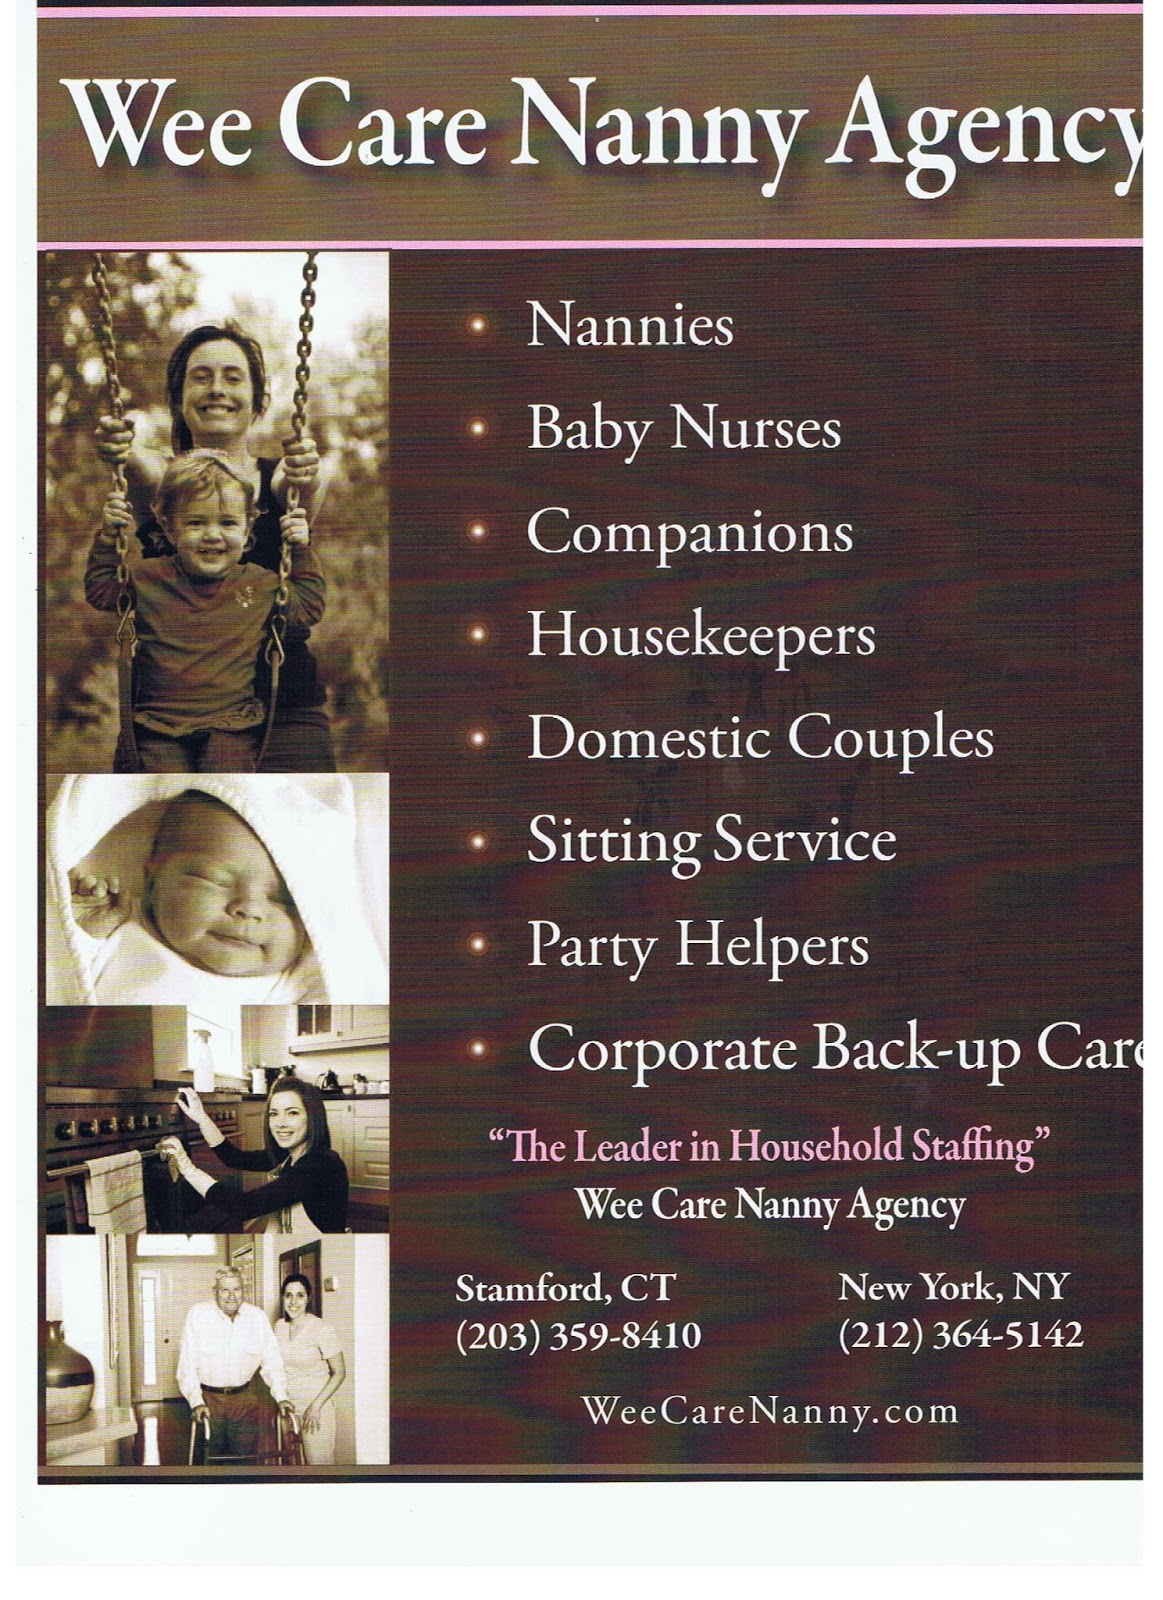 wee care nanny agency questions to ask your prospective nanny posted by wee care nanny agency